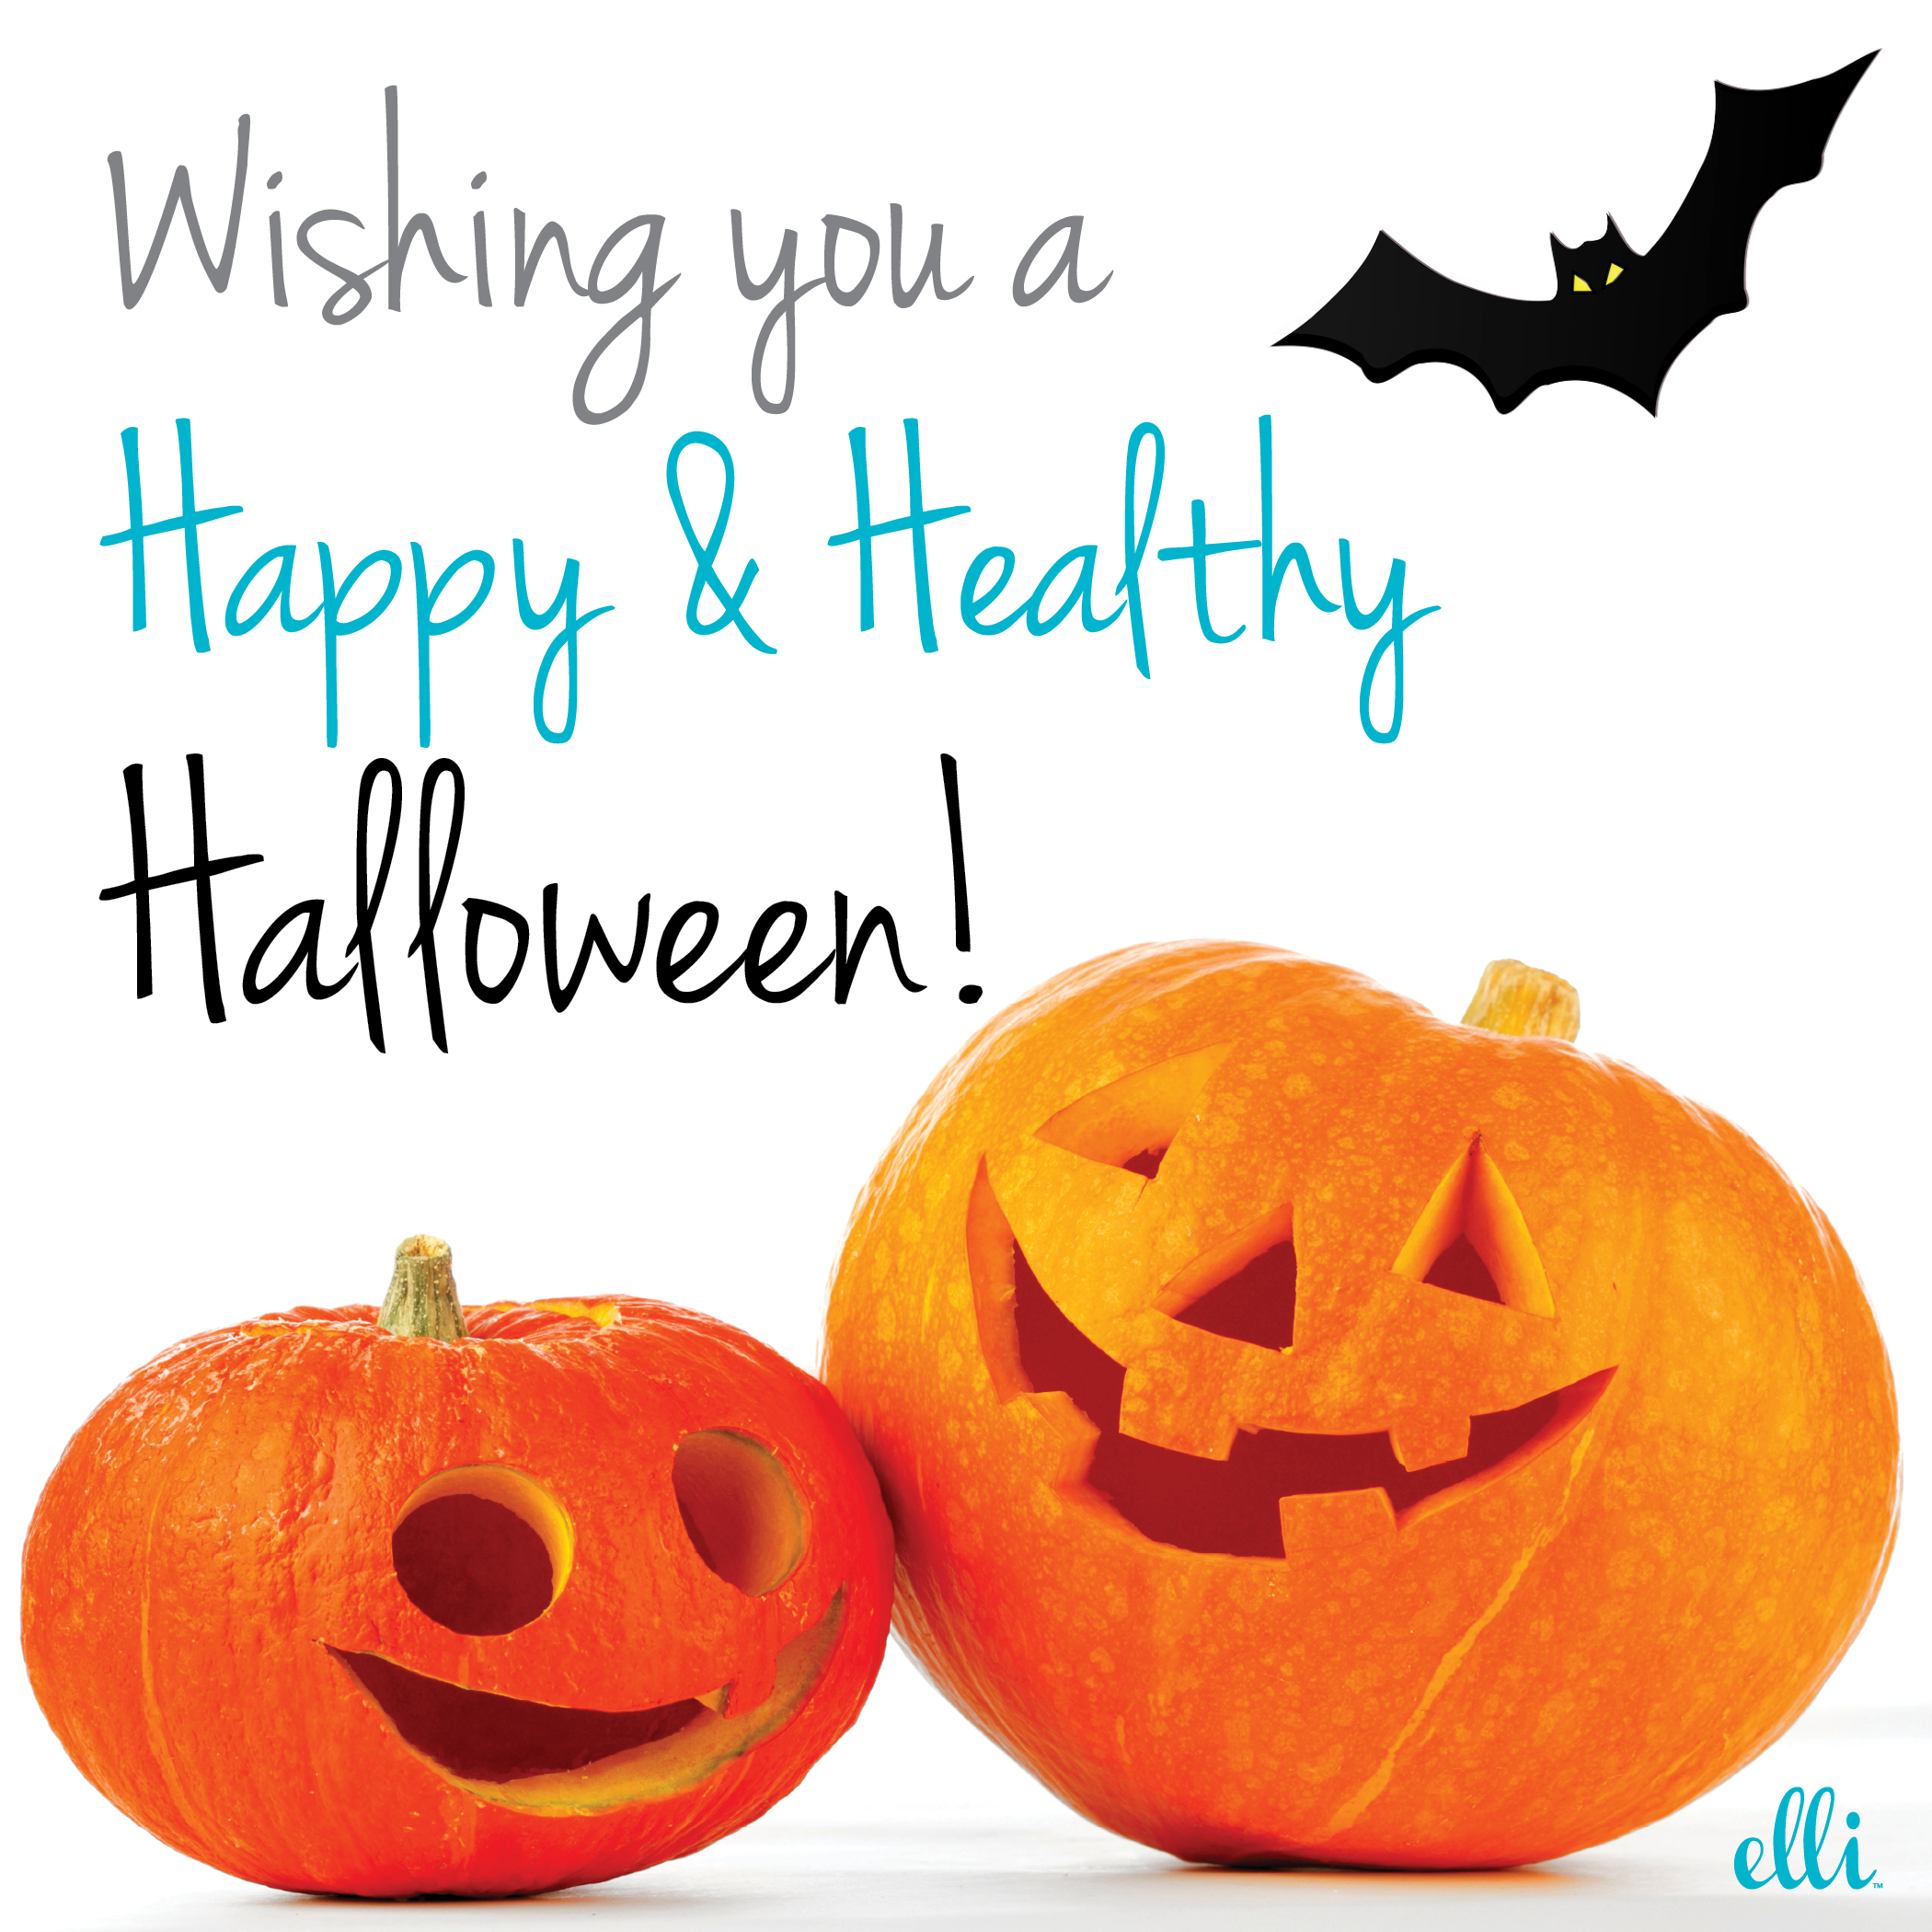 Happy Halloween Everyone! Stay Healthy, Stay Safe! =)